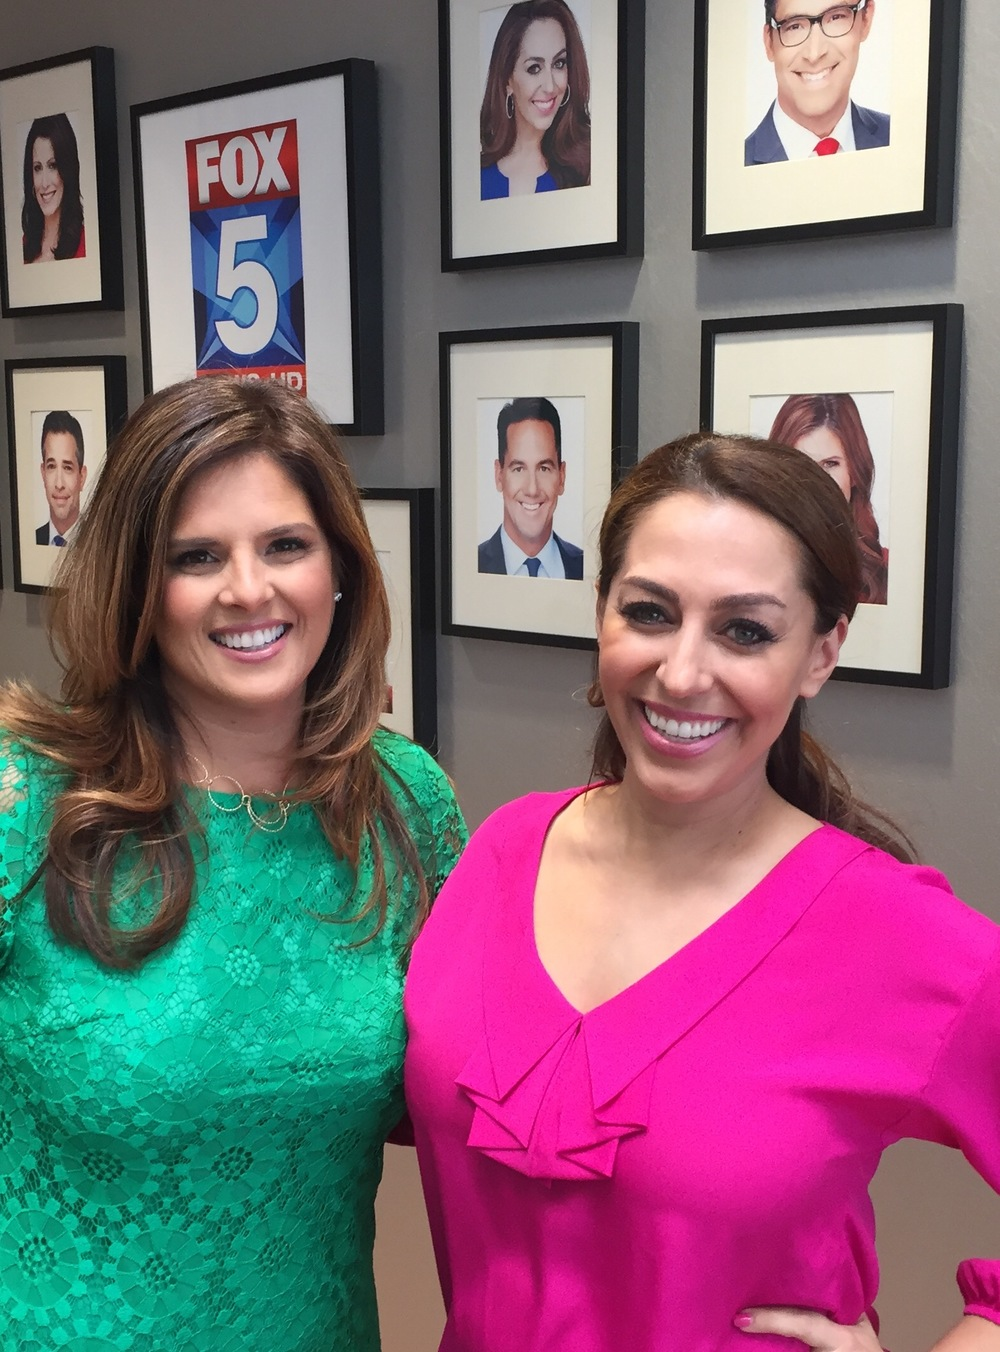 Luxe Specialist Rosalena Huarcaya with Shally Zomorodi of Fox 5 morning news